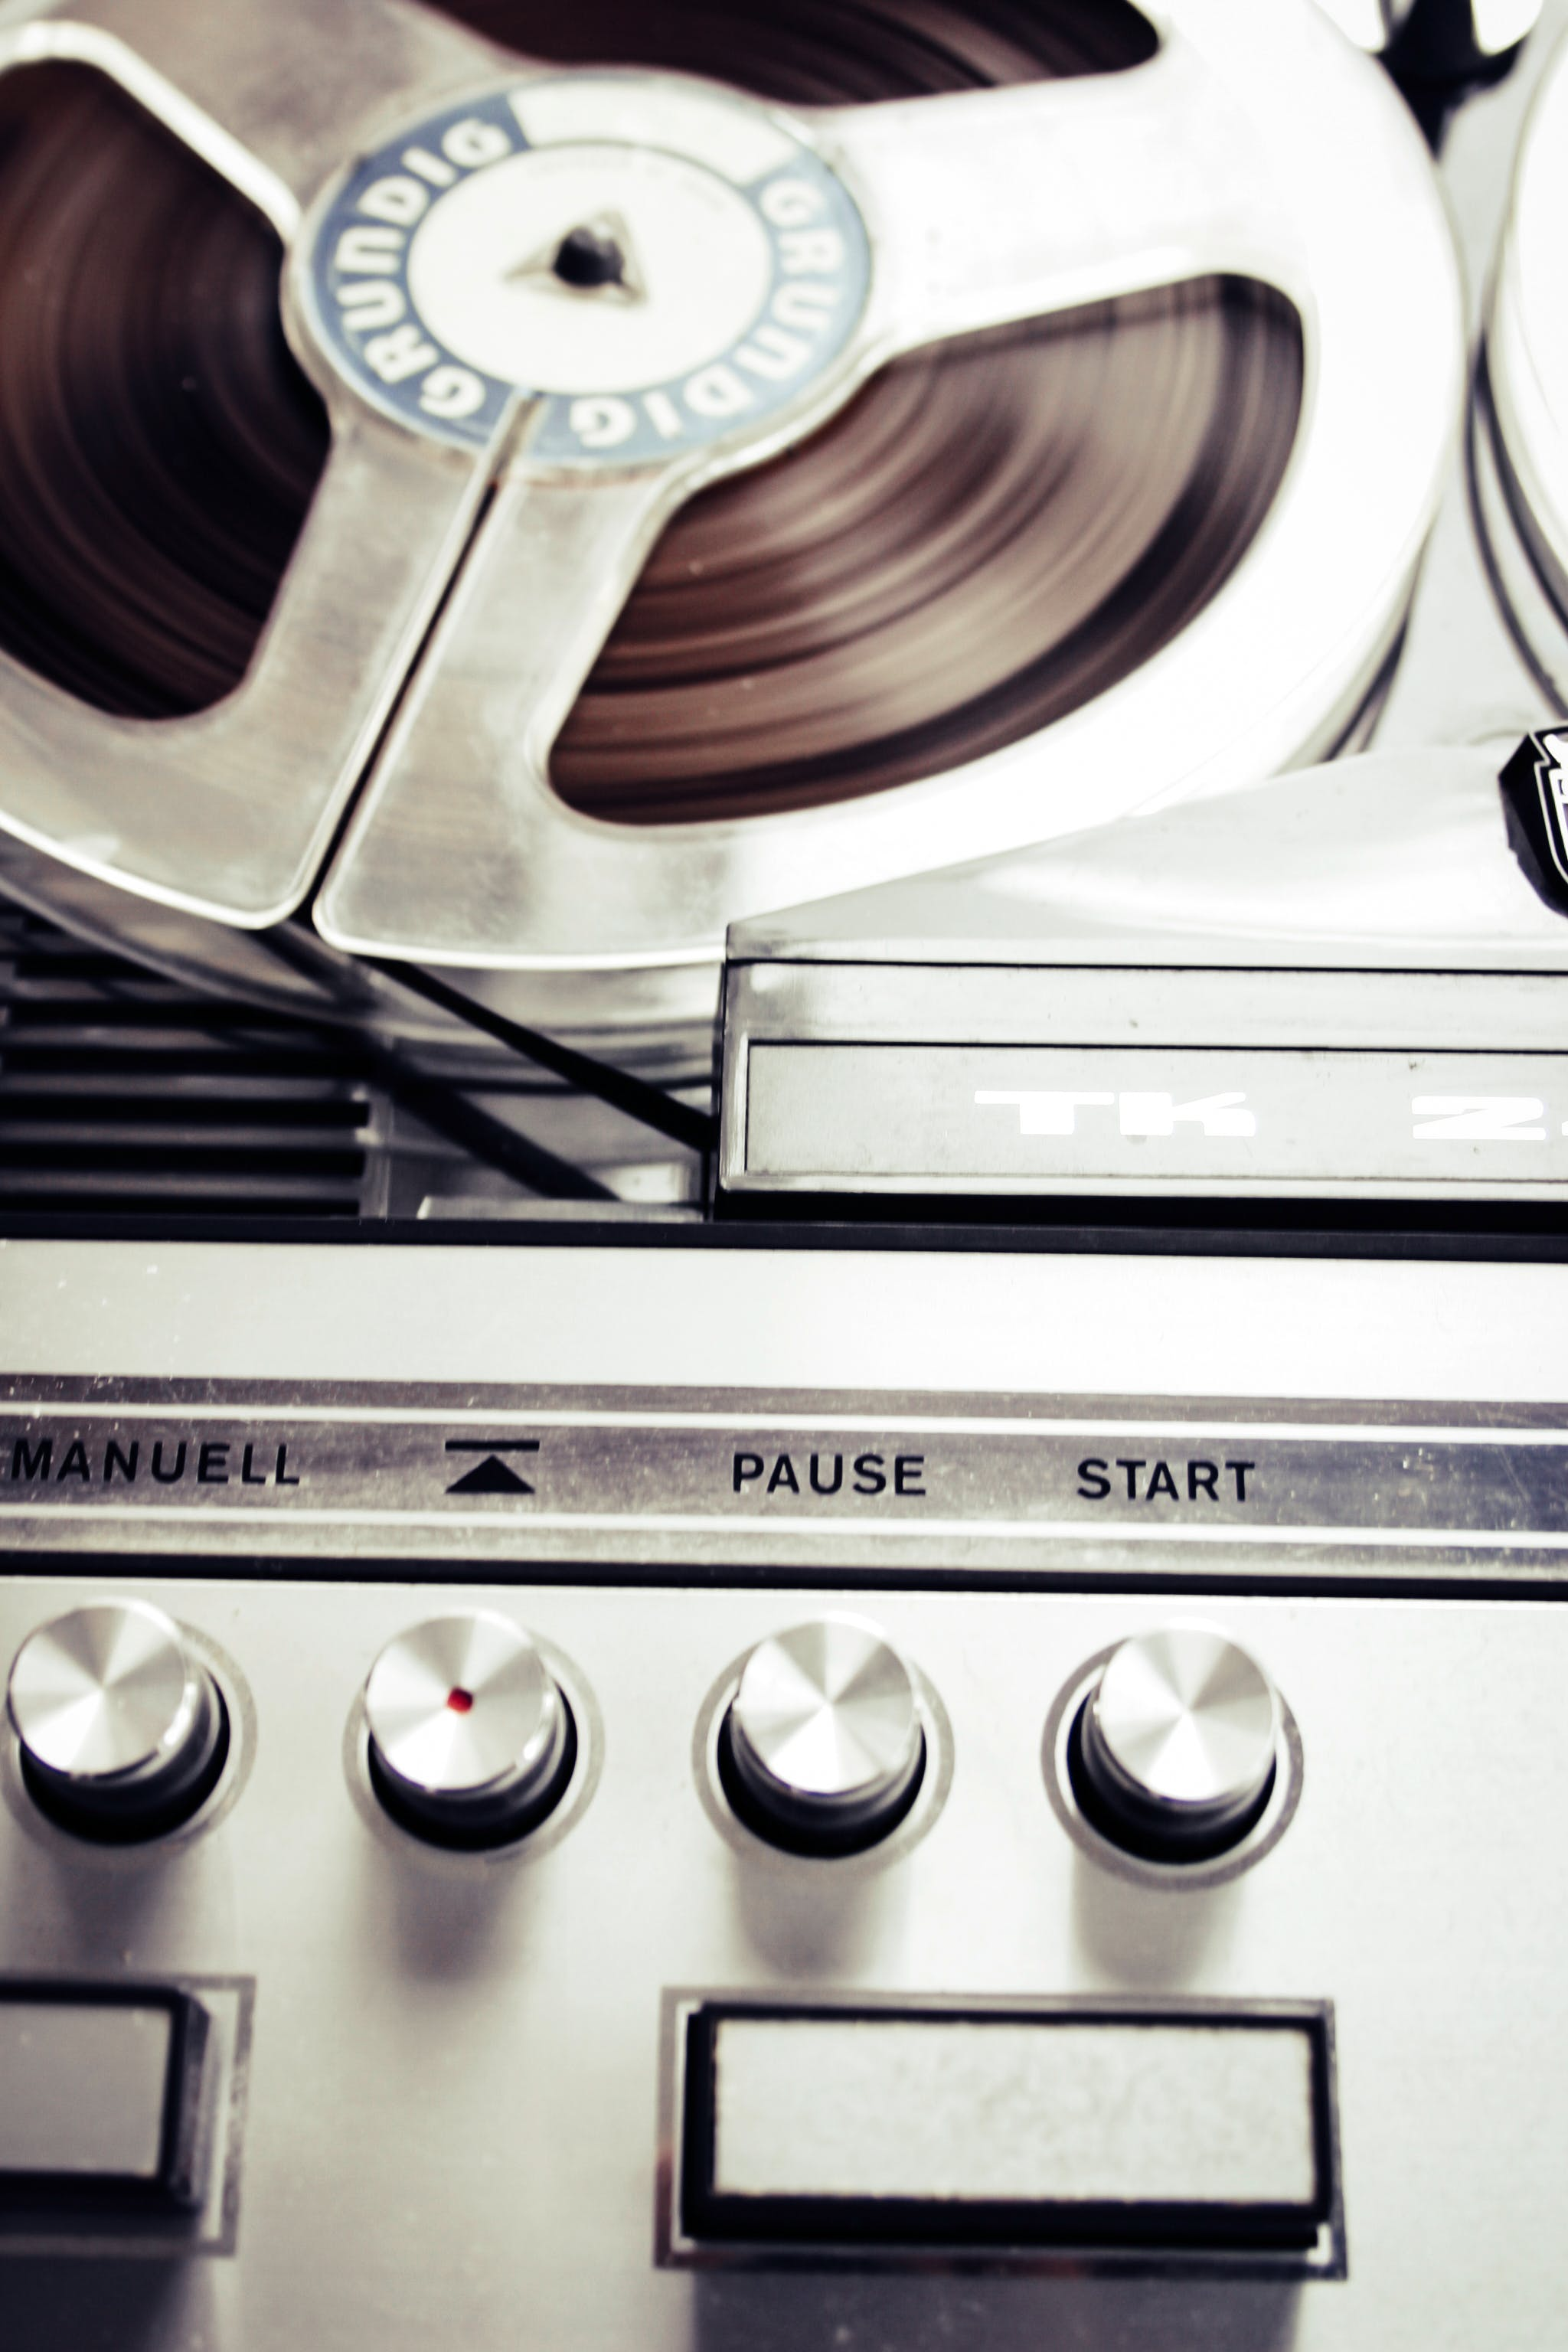 Close Photo of Vinytl Record Player